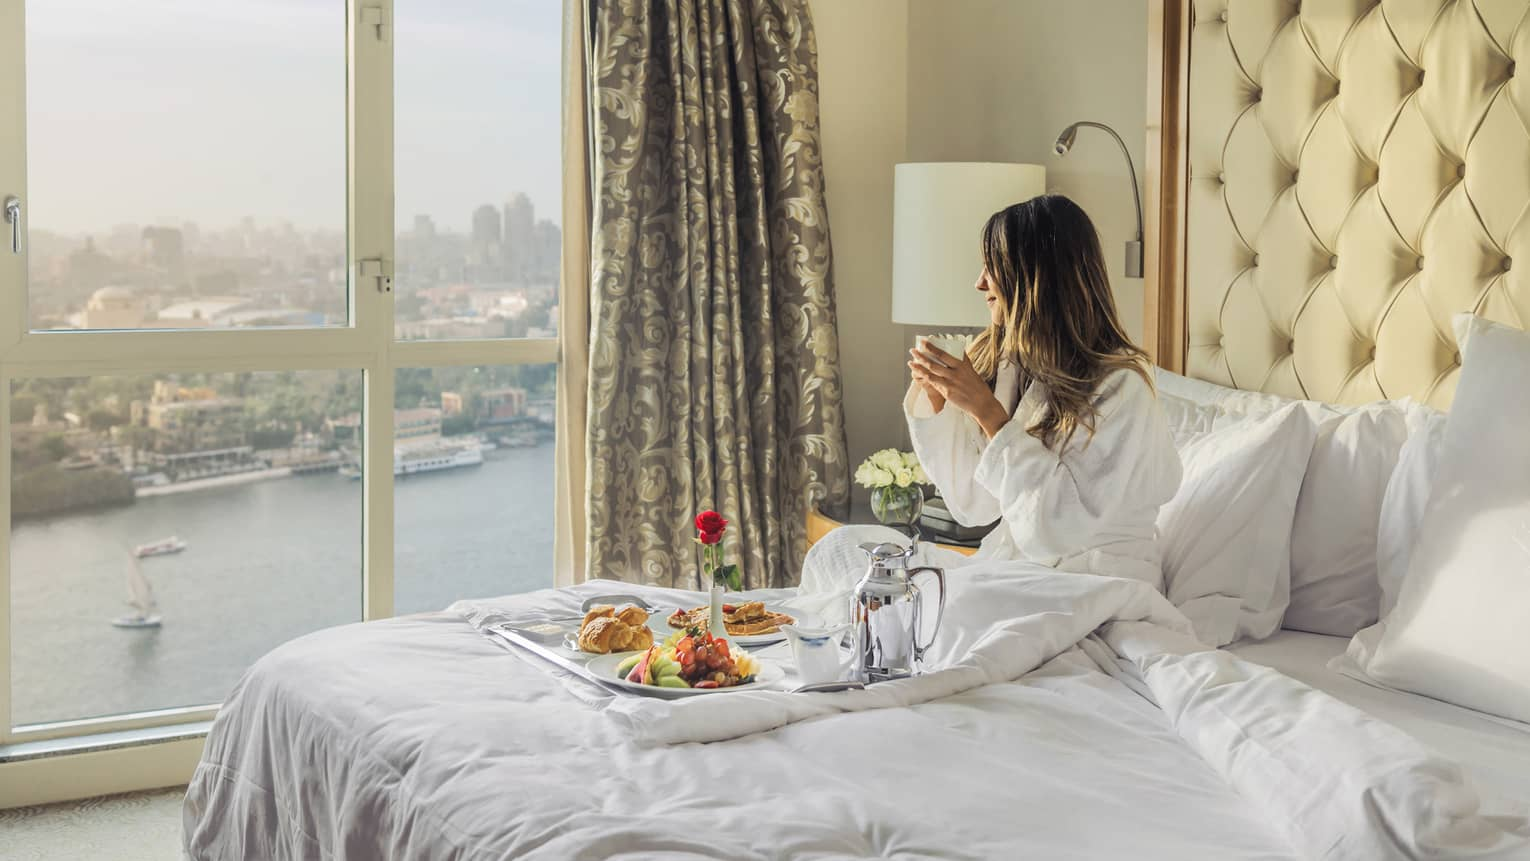 Woman sitting on a bed with a tray of food, looking toward the Nile River and Cairo from the window